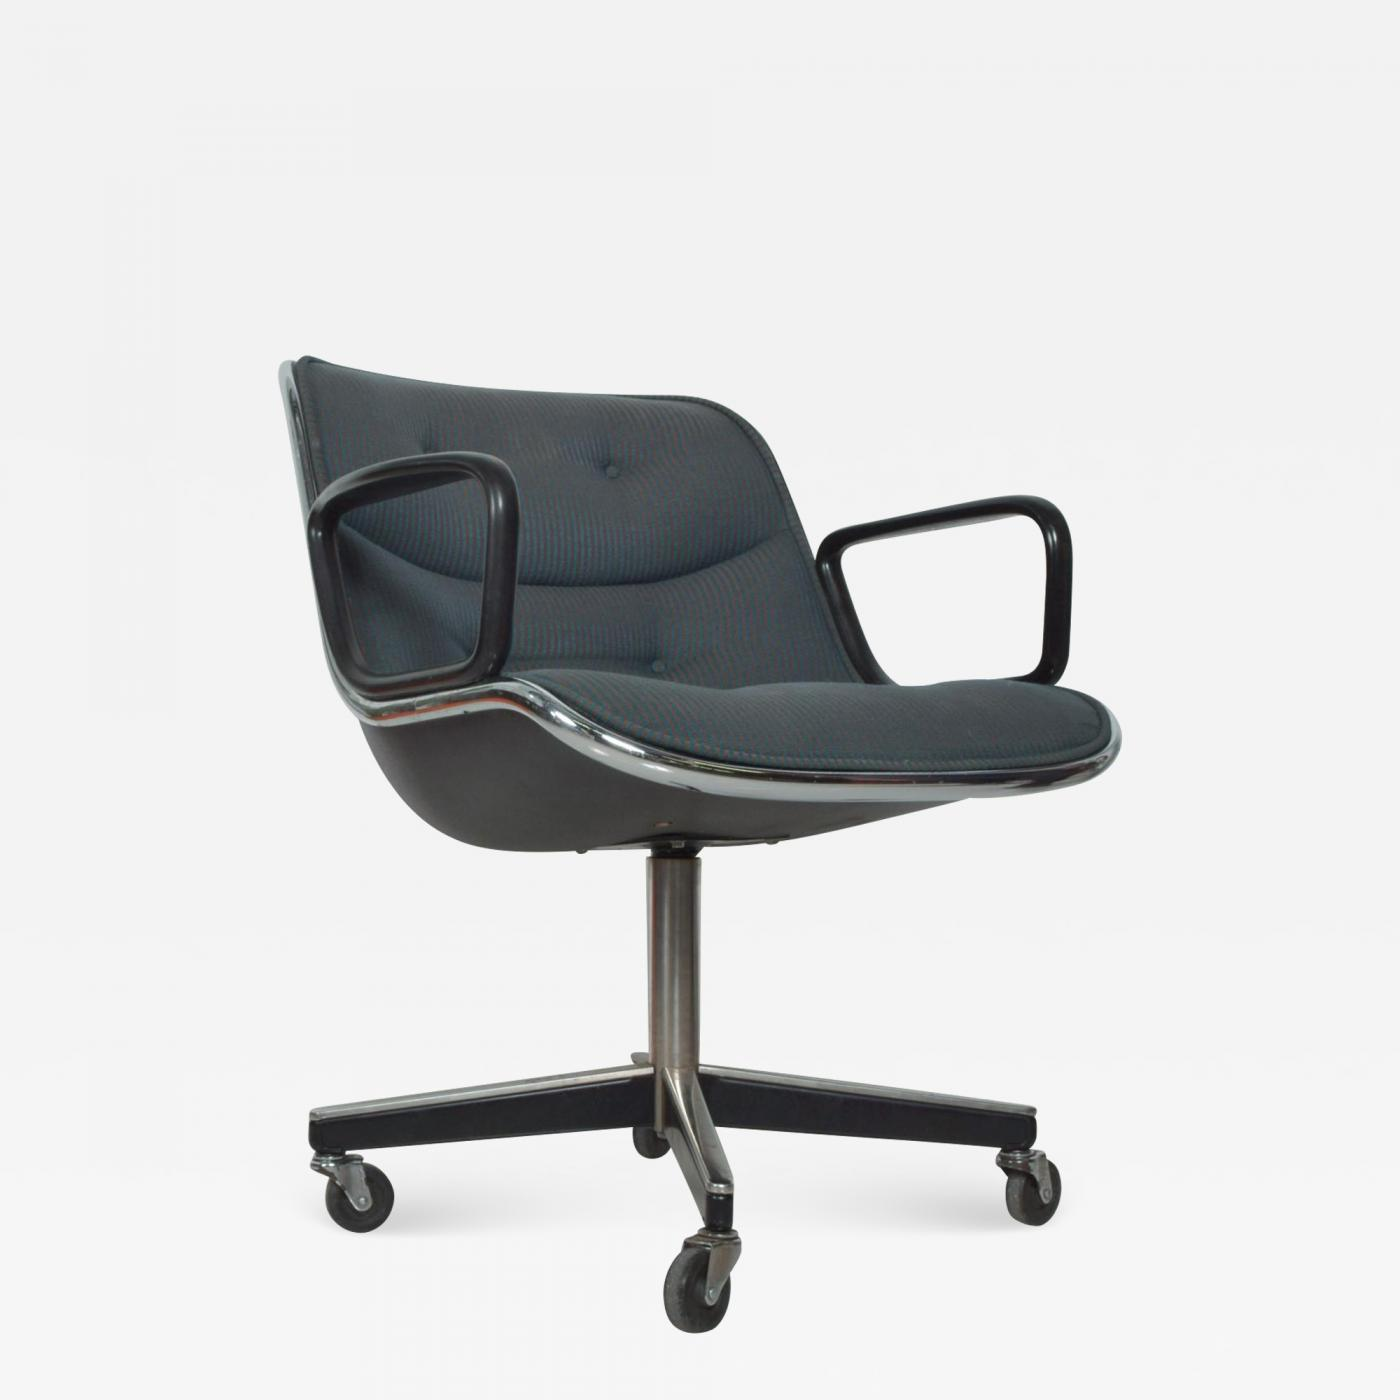 Charles Pollock - Charles Pollock Office Chair for Knoll With Upholstery  Mid Century Modern